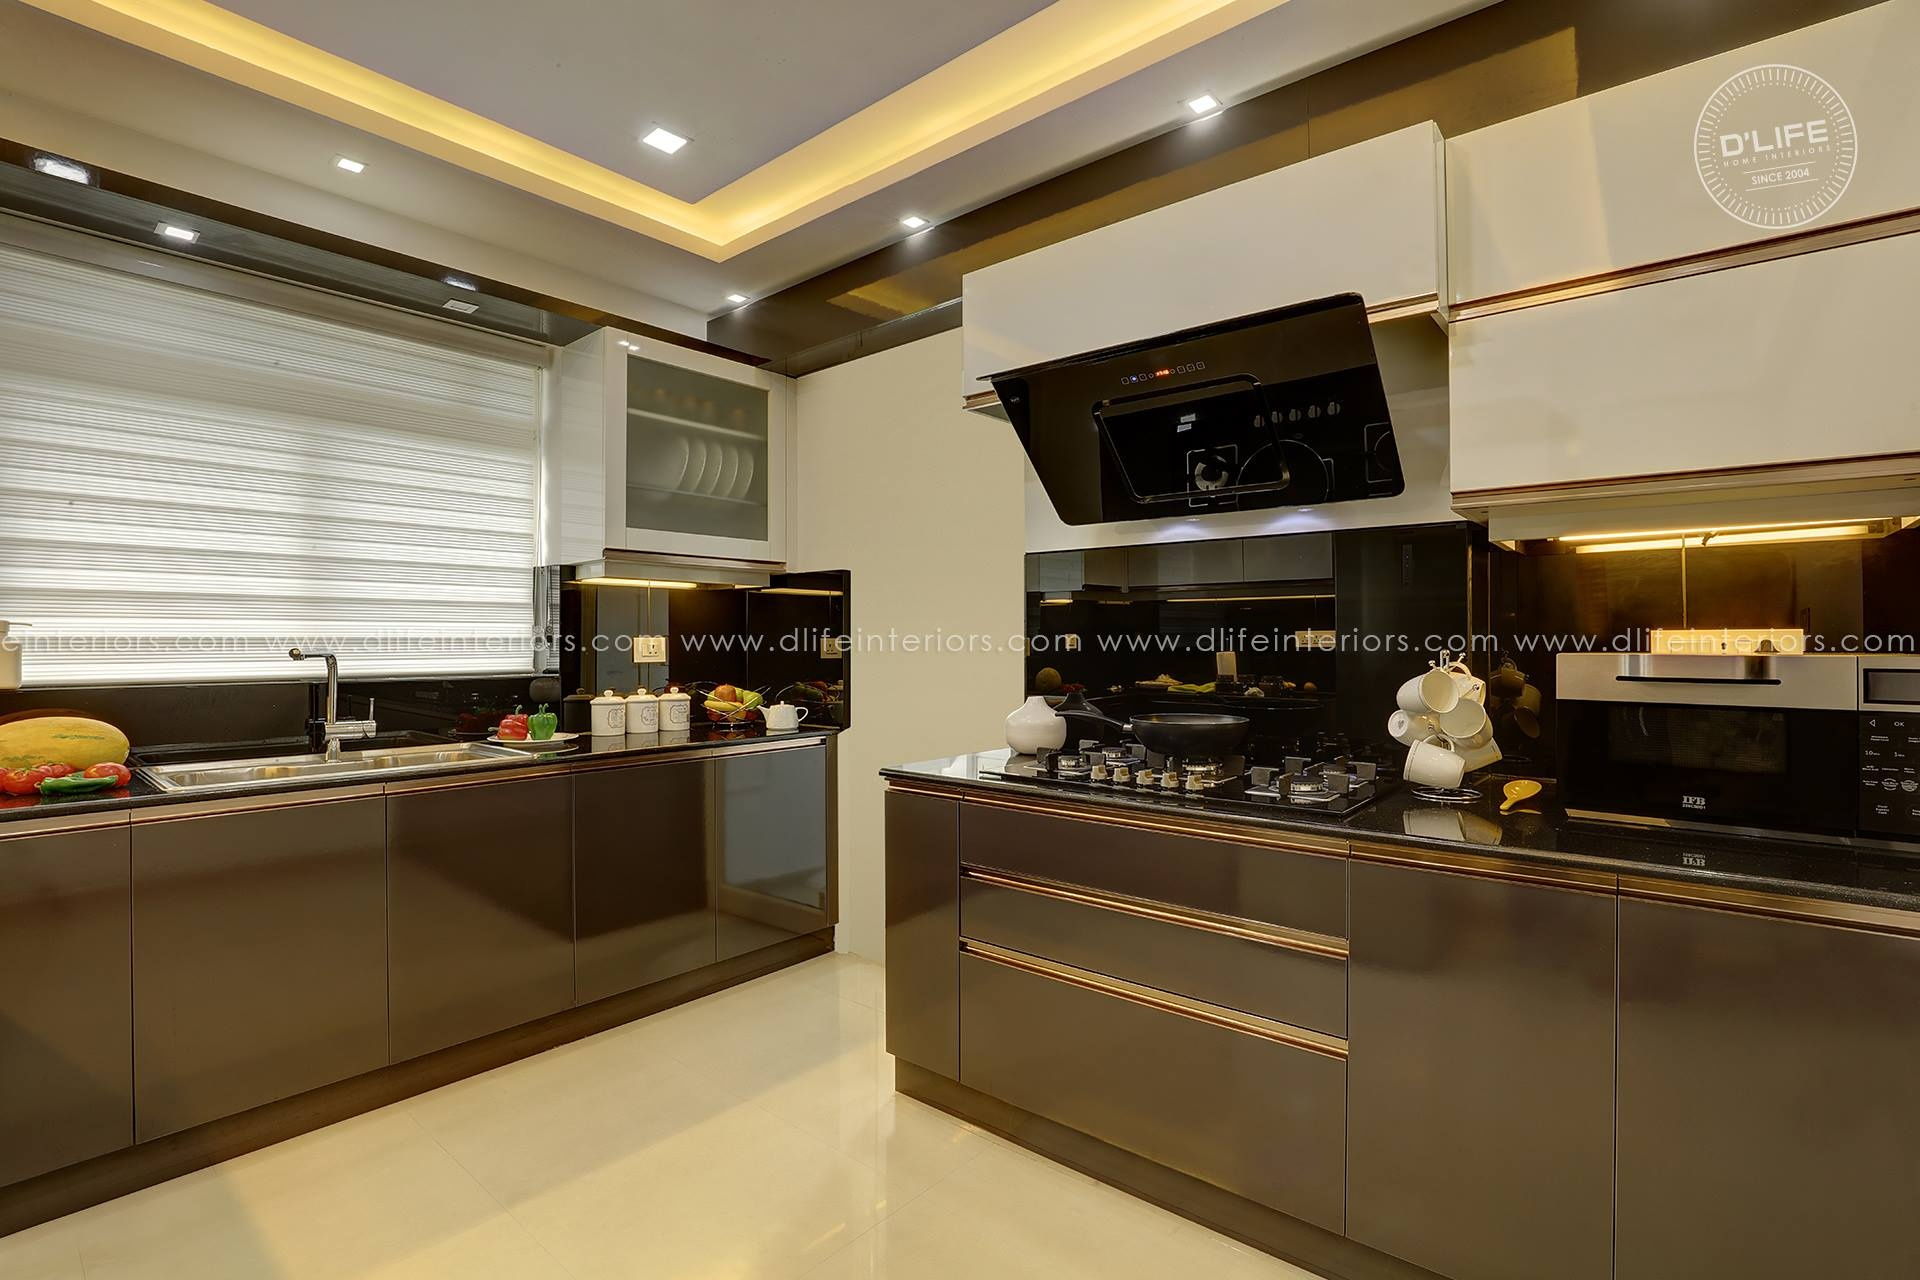 What Are The Best Materials Marine Wood Hardwood Etc